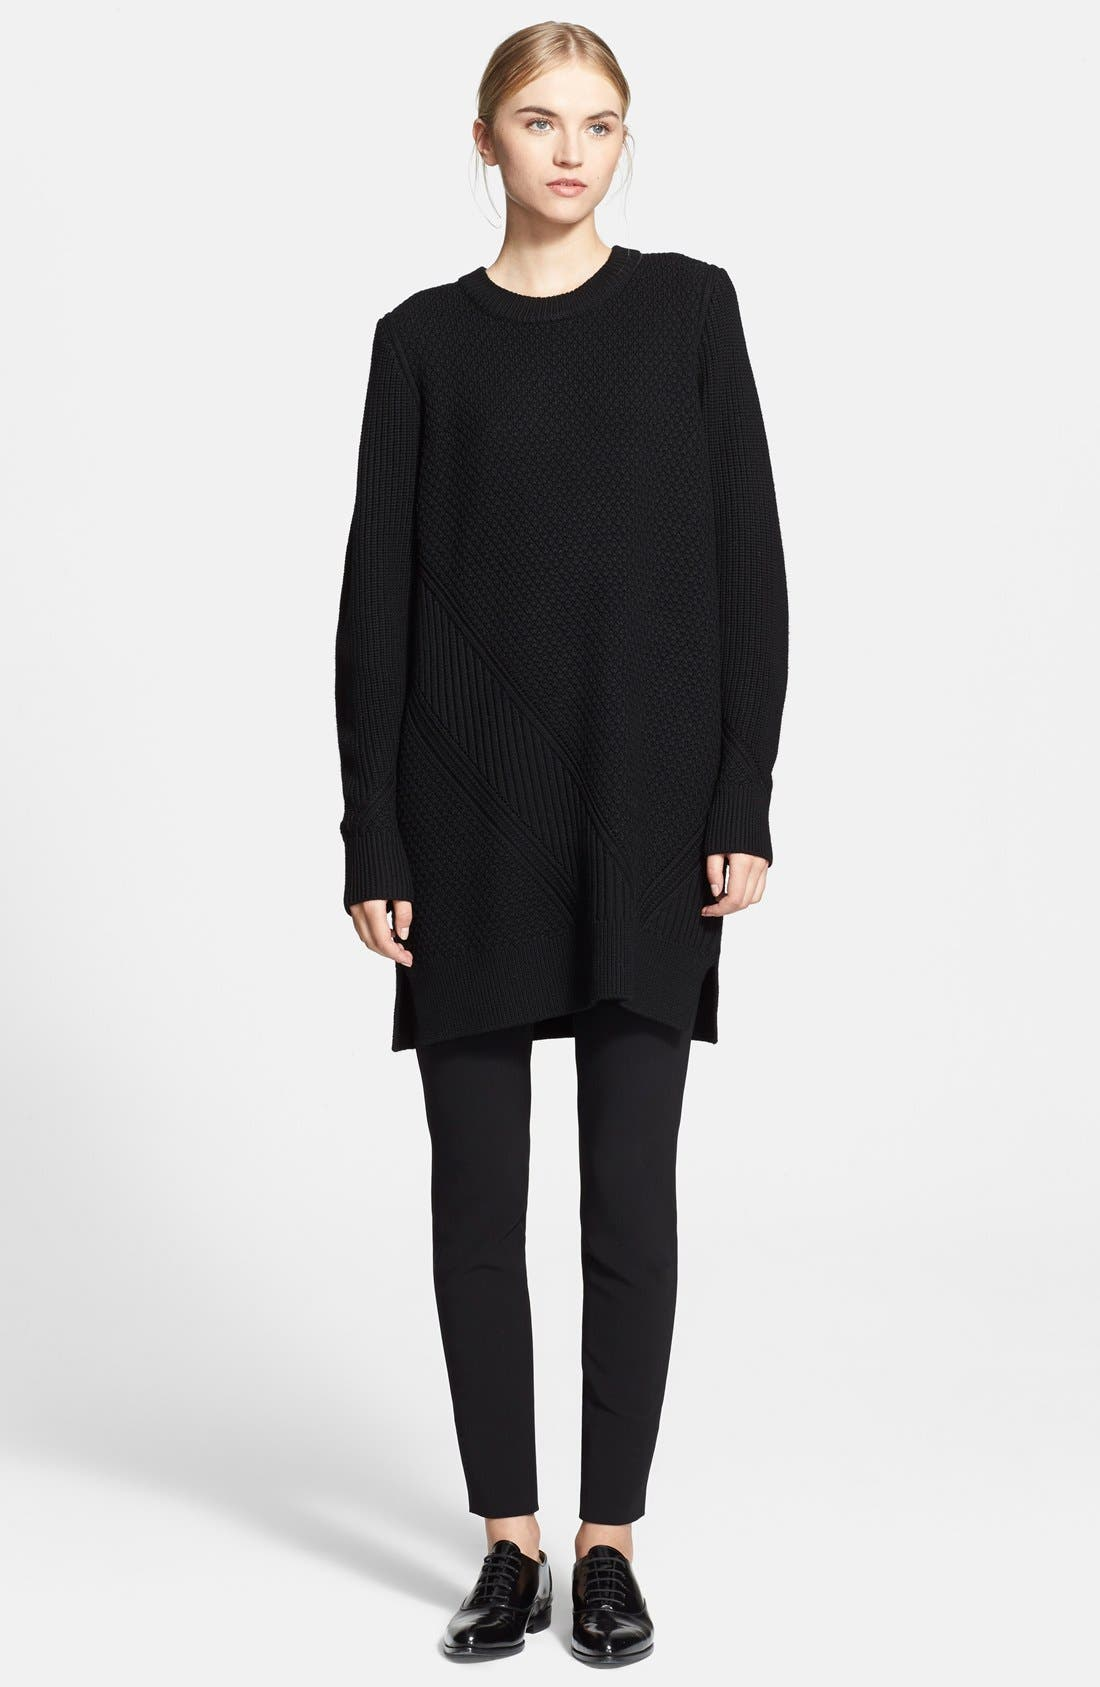 Alternate Image 1 Selected - Proenza Schouler Mix Stitch Crewneck Sweater Tunic